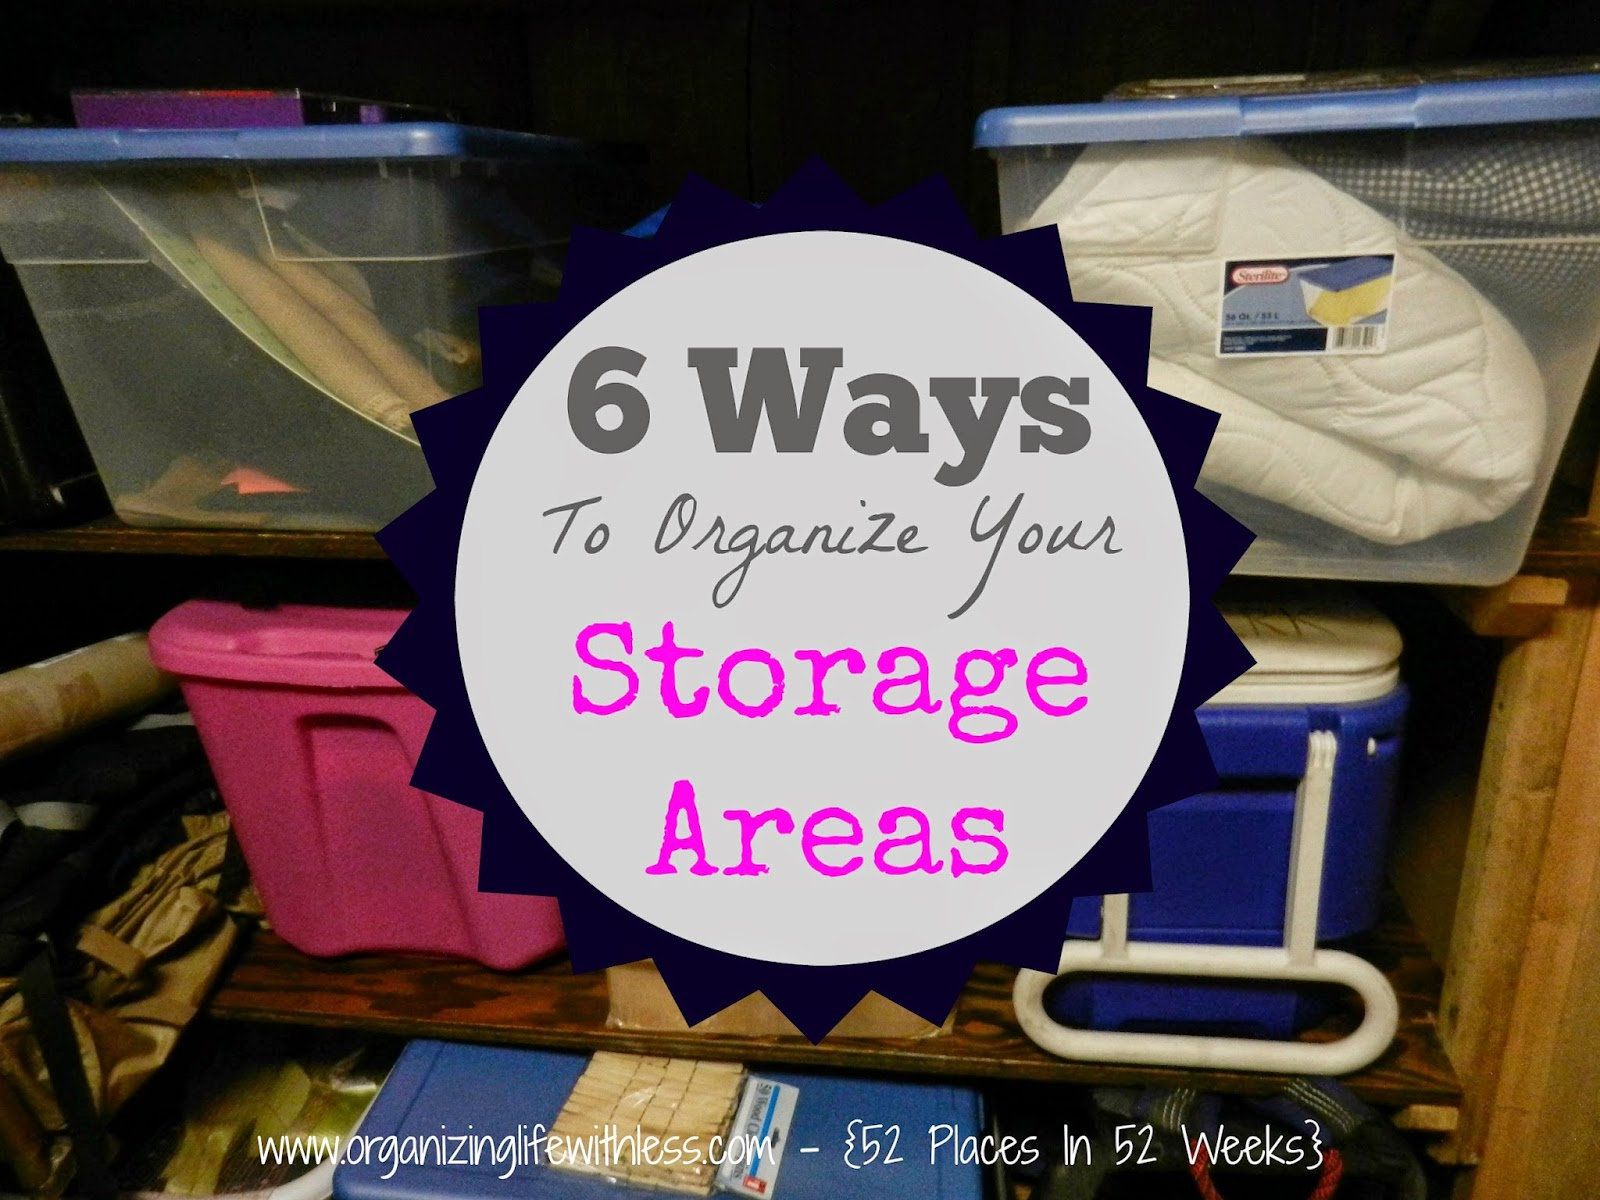 52 Places In 52 Weeks: Organizing Your Storage Areas